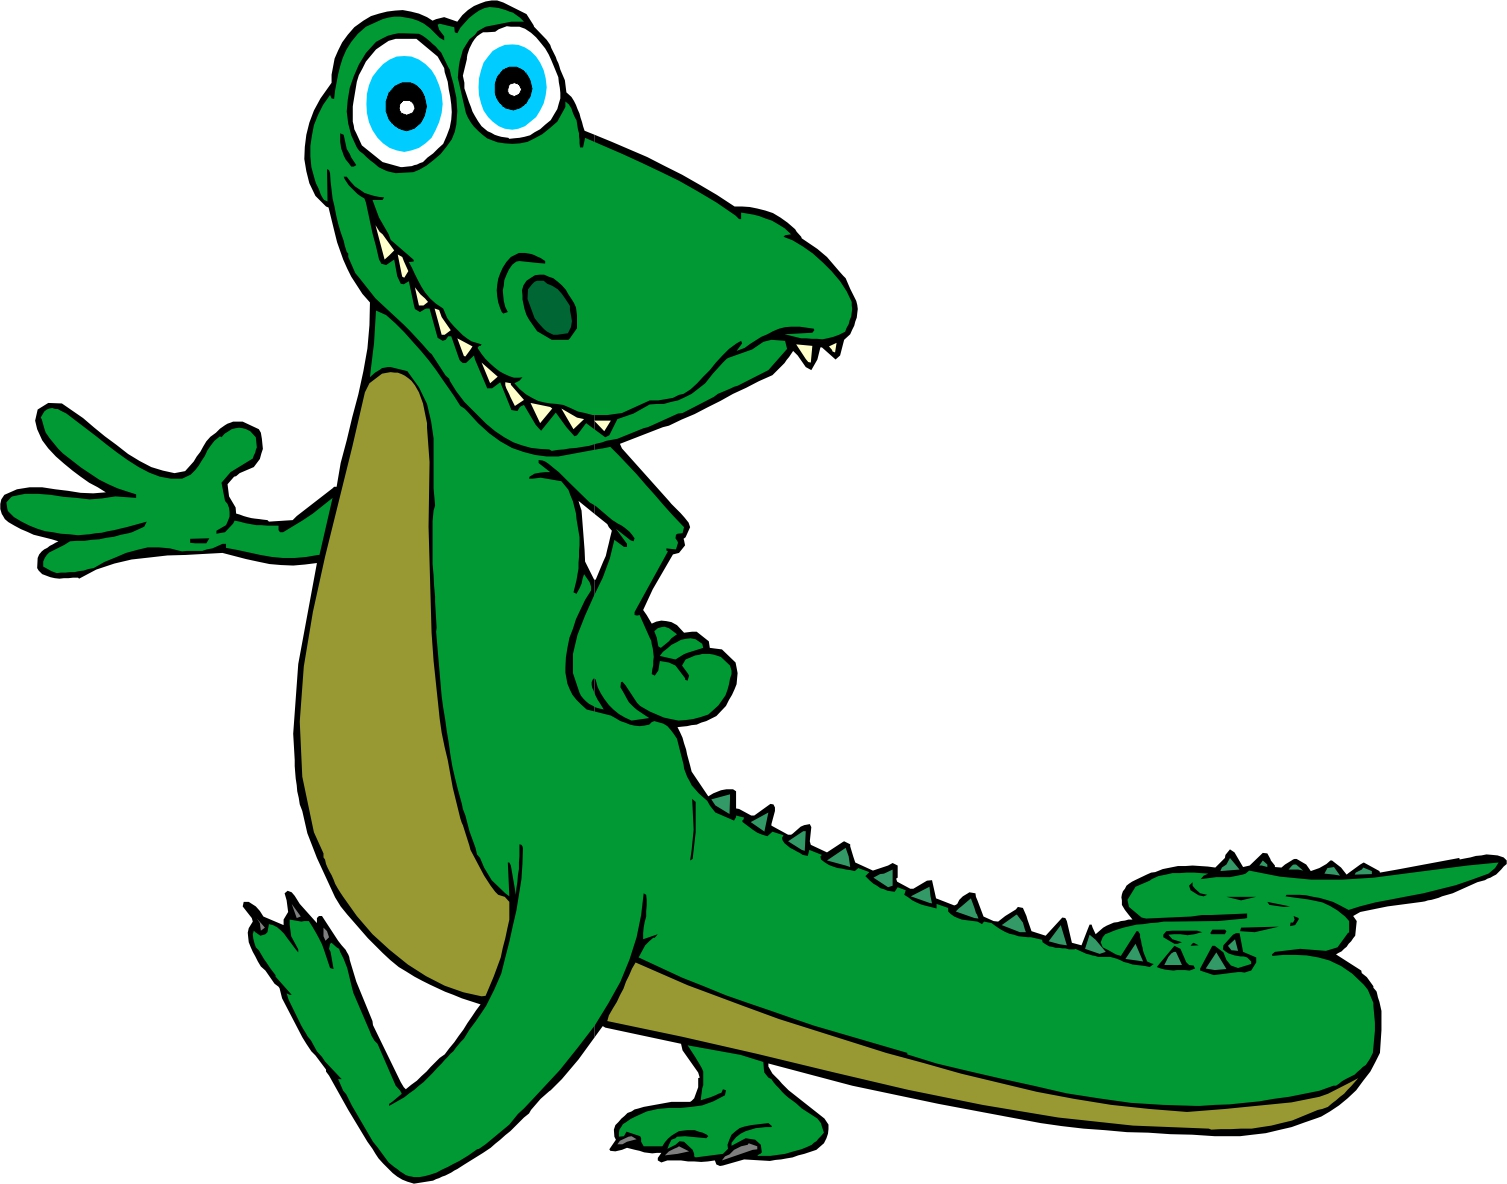 Funny alligator clip art crocodile pictures 2.